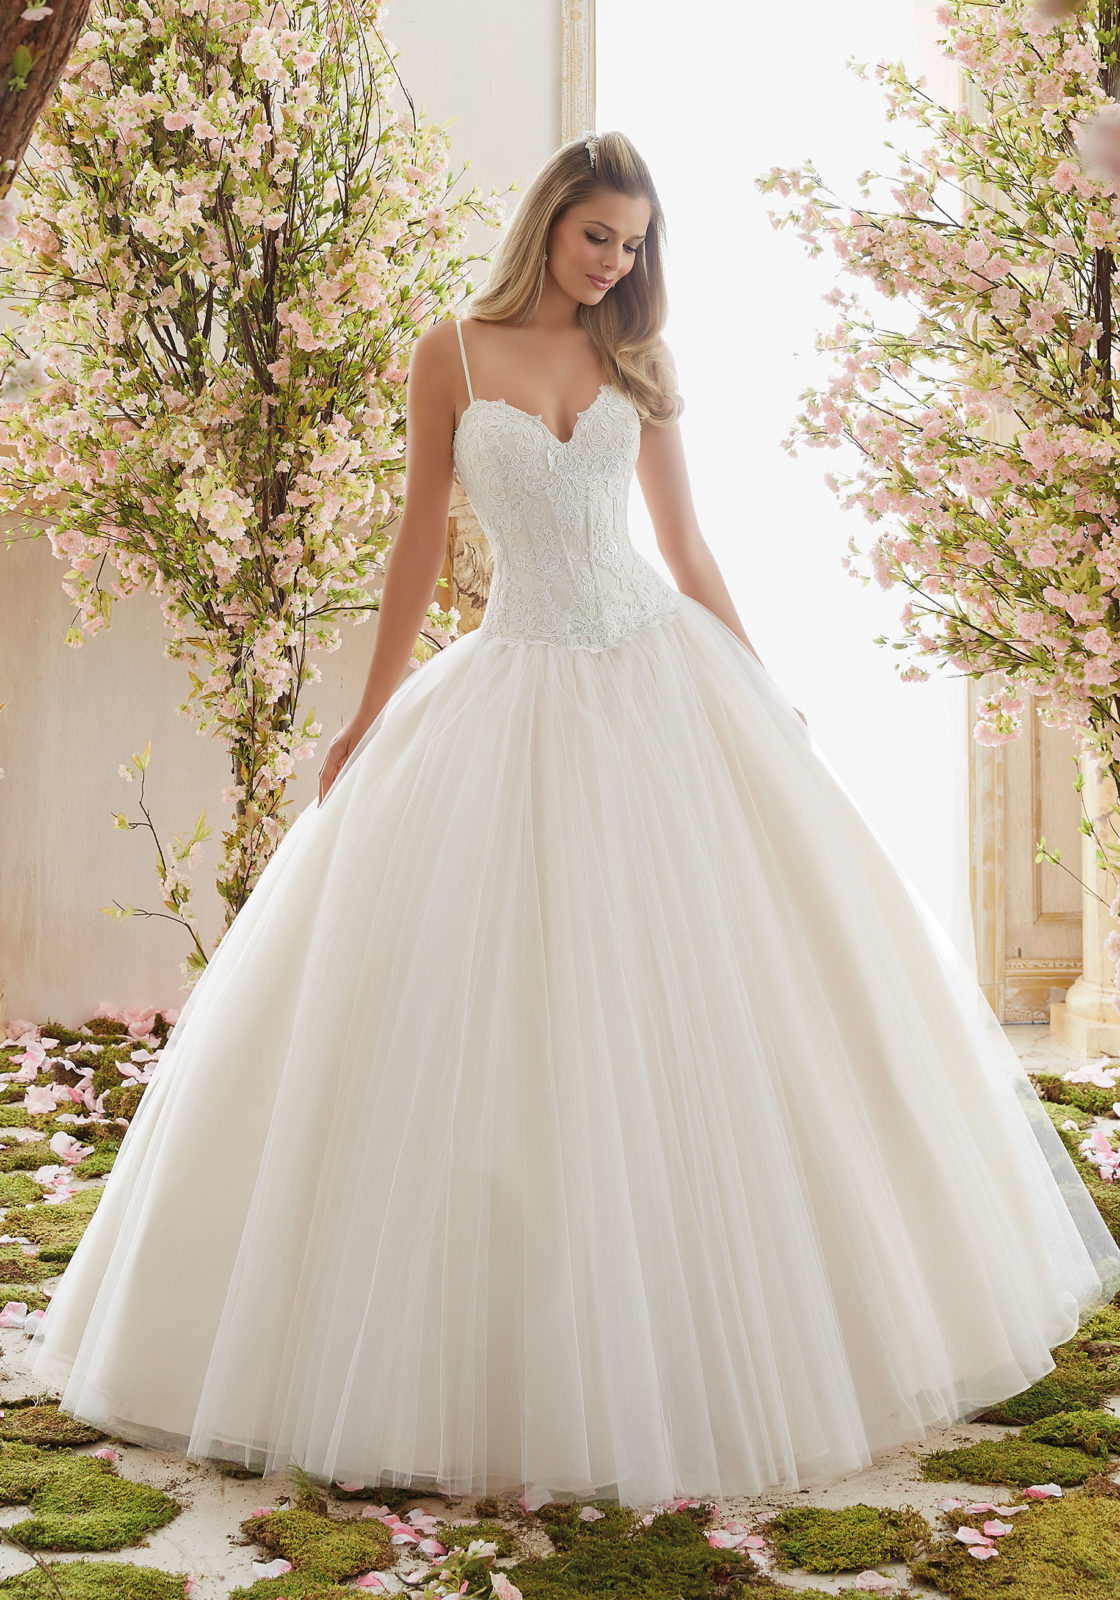 Affordable Wedding Dresses for Less Than $1500 in 2017 at your local ...